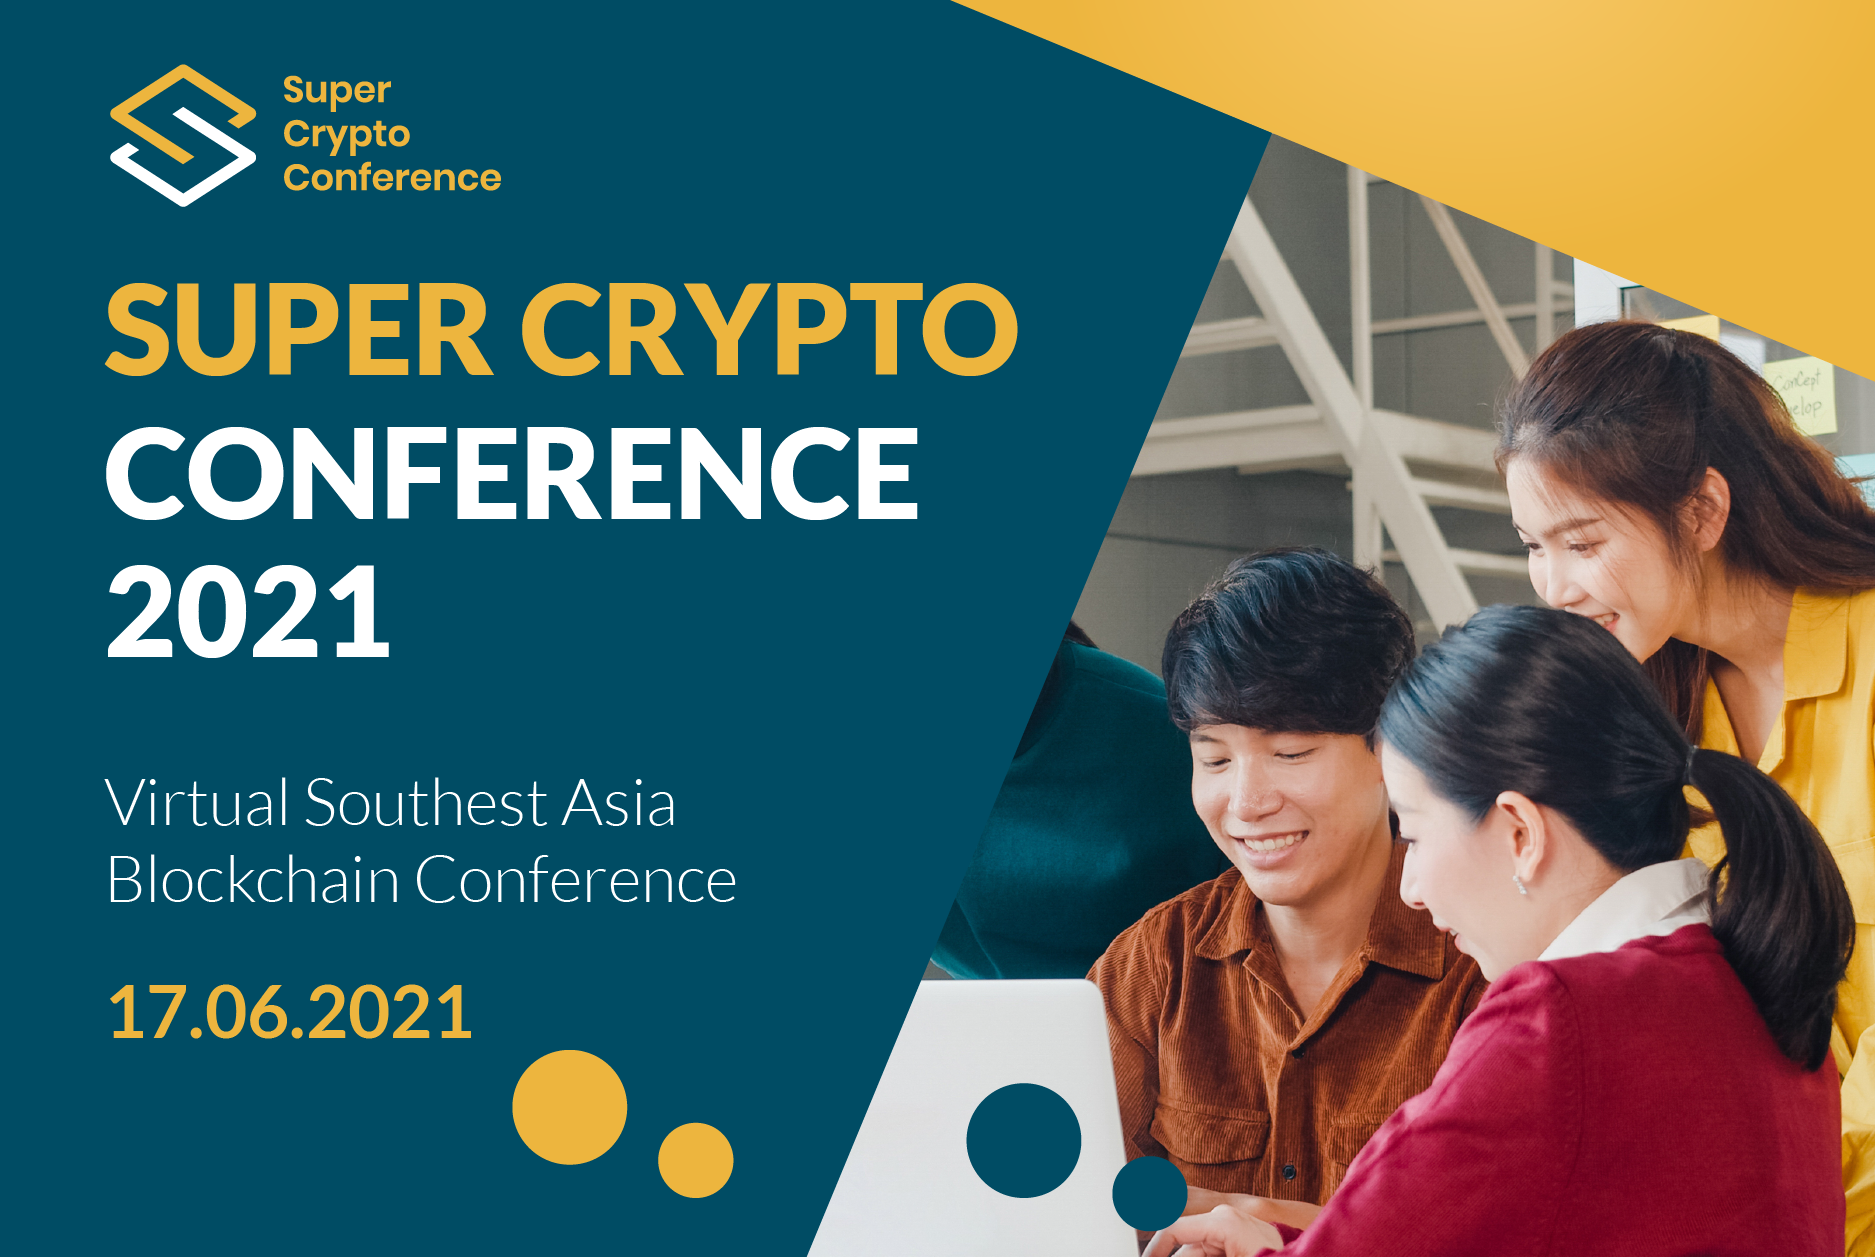 [Event Recap] Super Crypto Conference 2021 – An Overview of Blockchain & Cryptocurrency in Southeast Asia